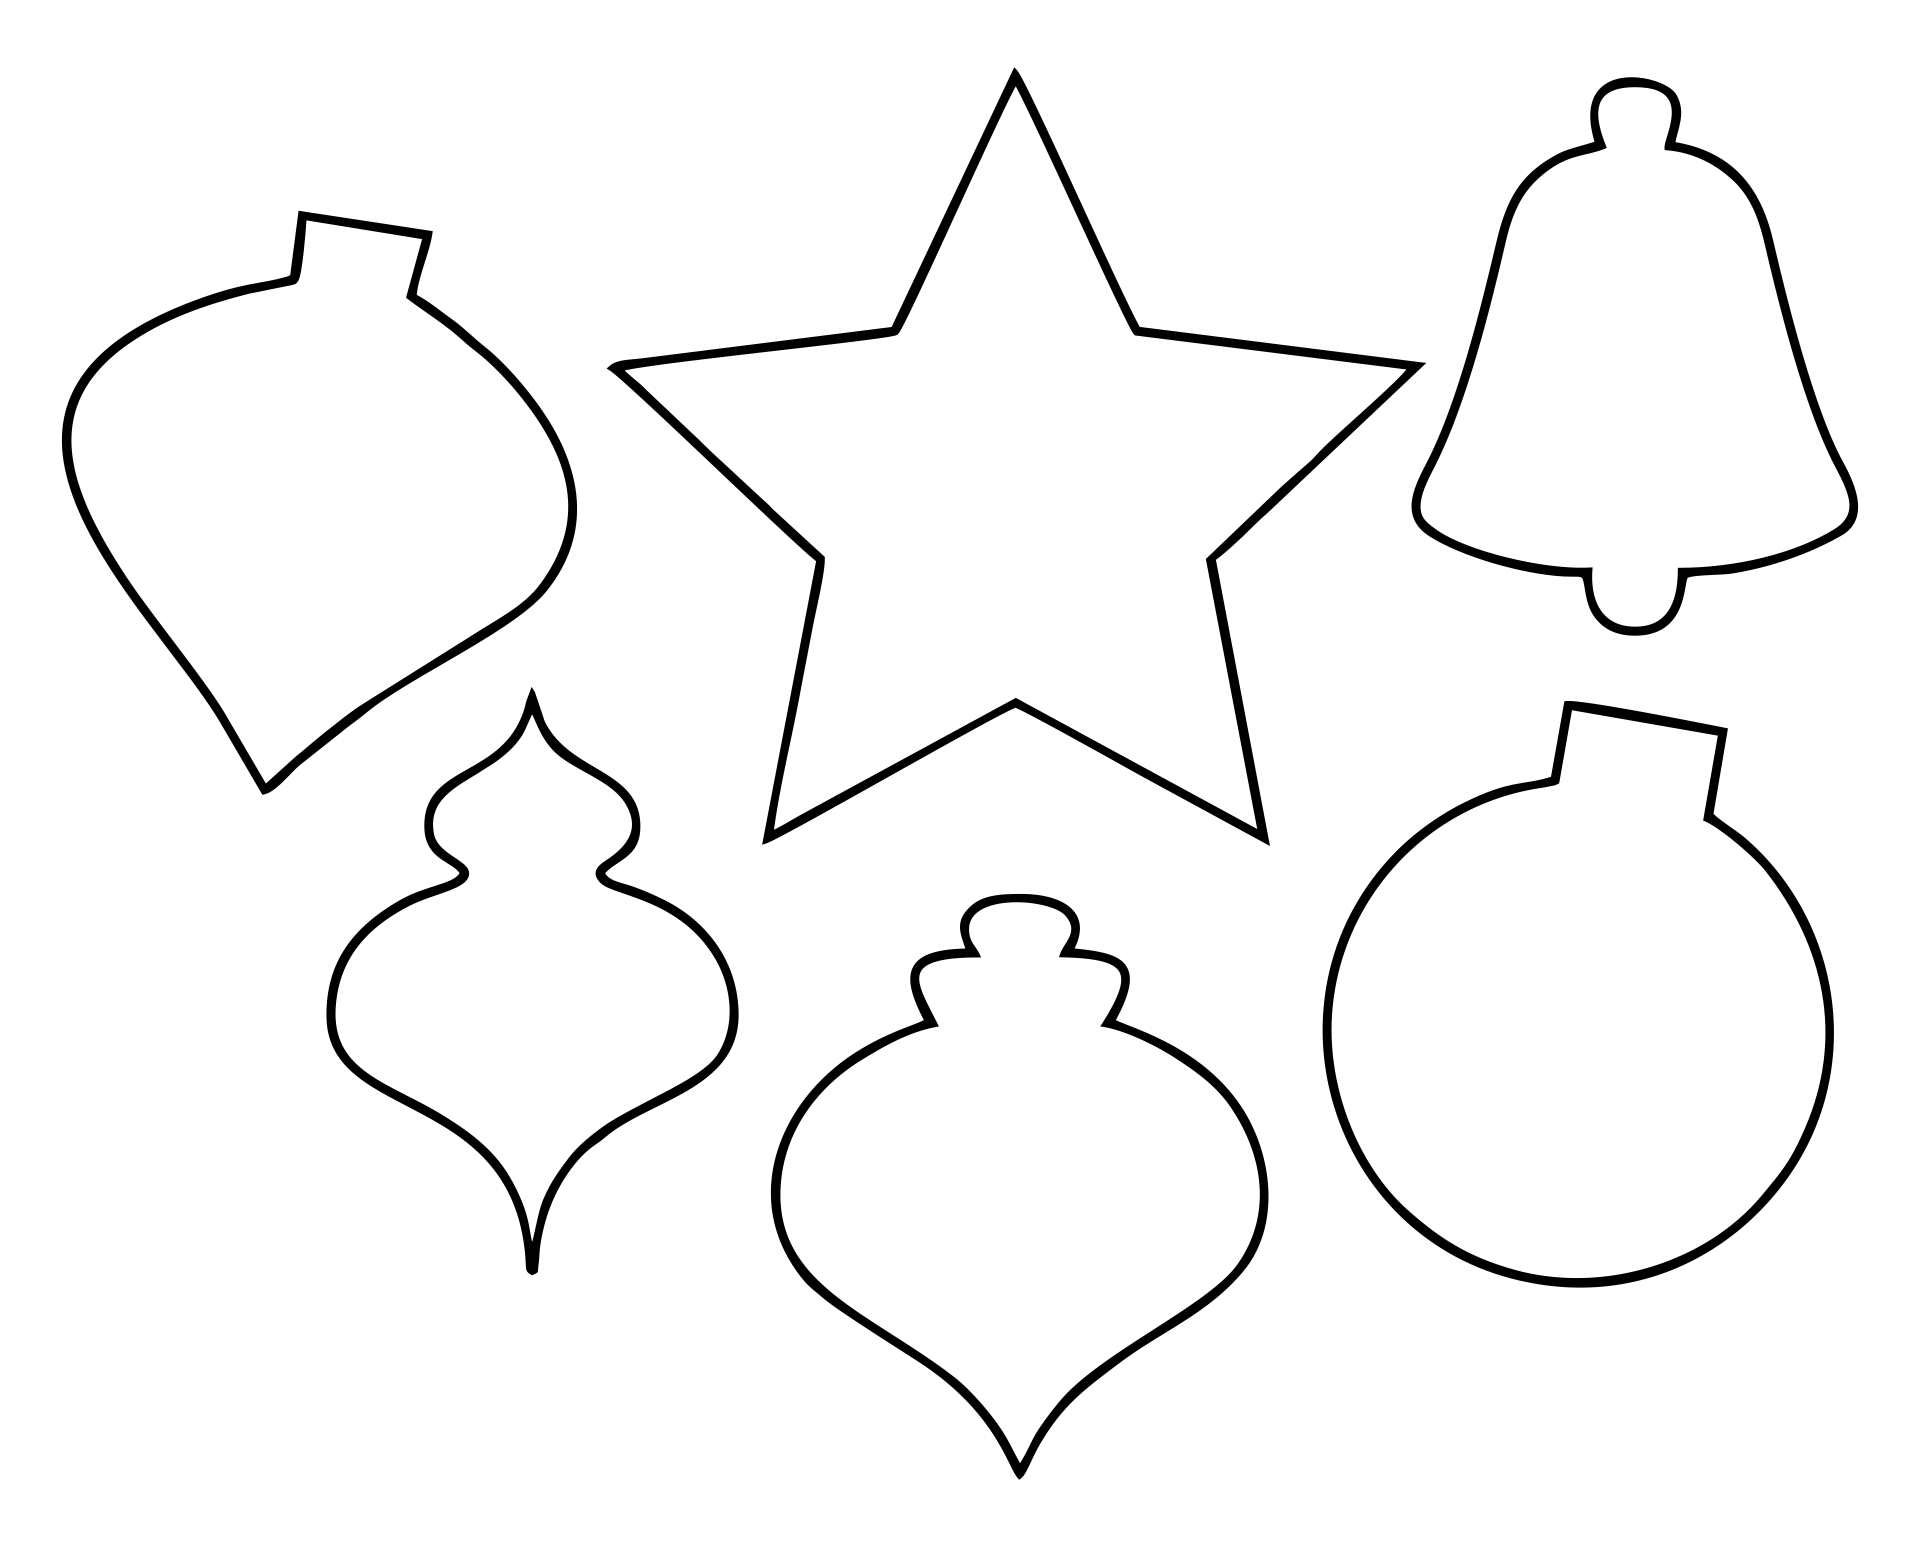 Printable Christmas Tree Ornament Patterns